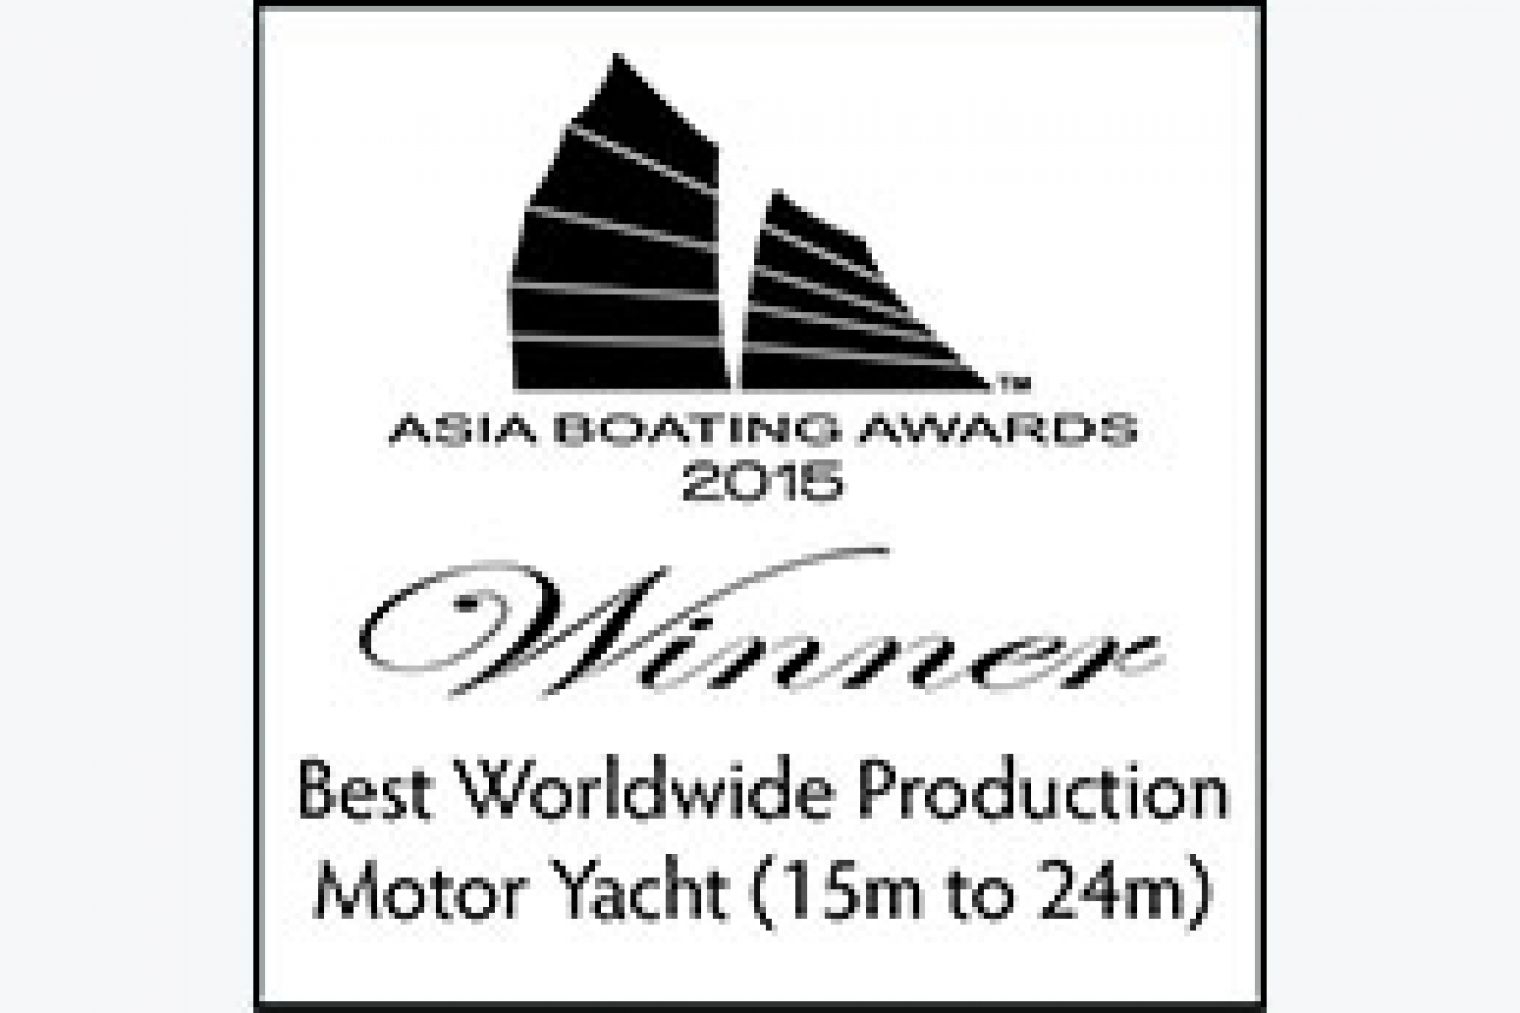 The Lagoon 630 MY is awarded the Best Worldwide Production Motor Yacht (up to 15m) trophy in Asia